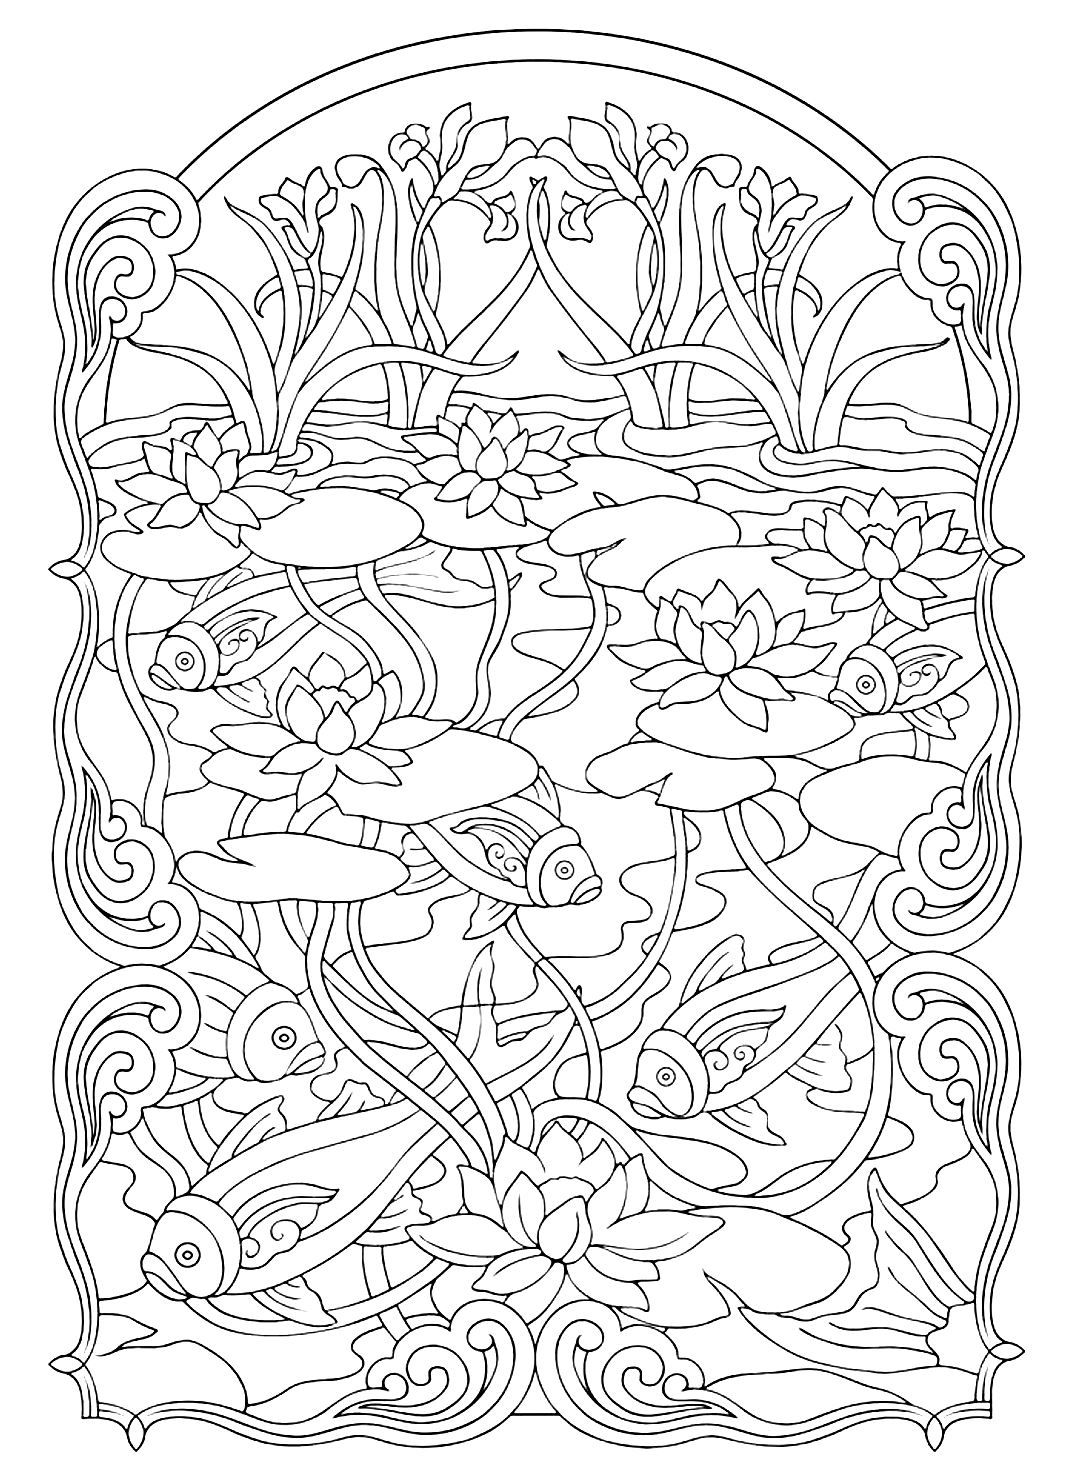 Gratis para colorear colorear-adulto-estanque. Lindo dibujo de peces ...